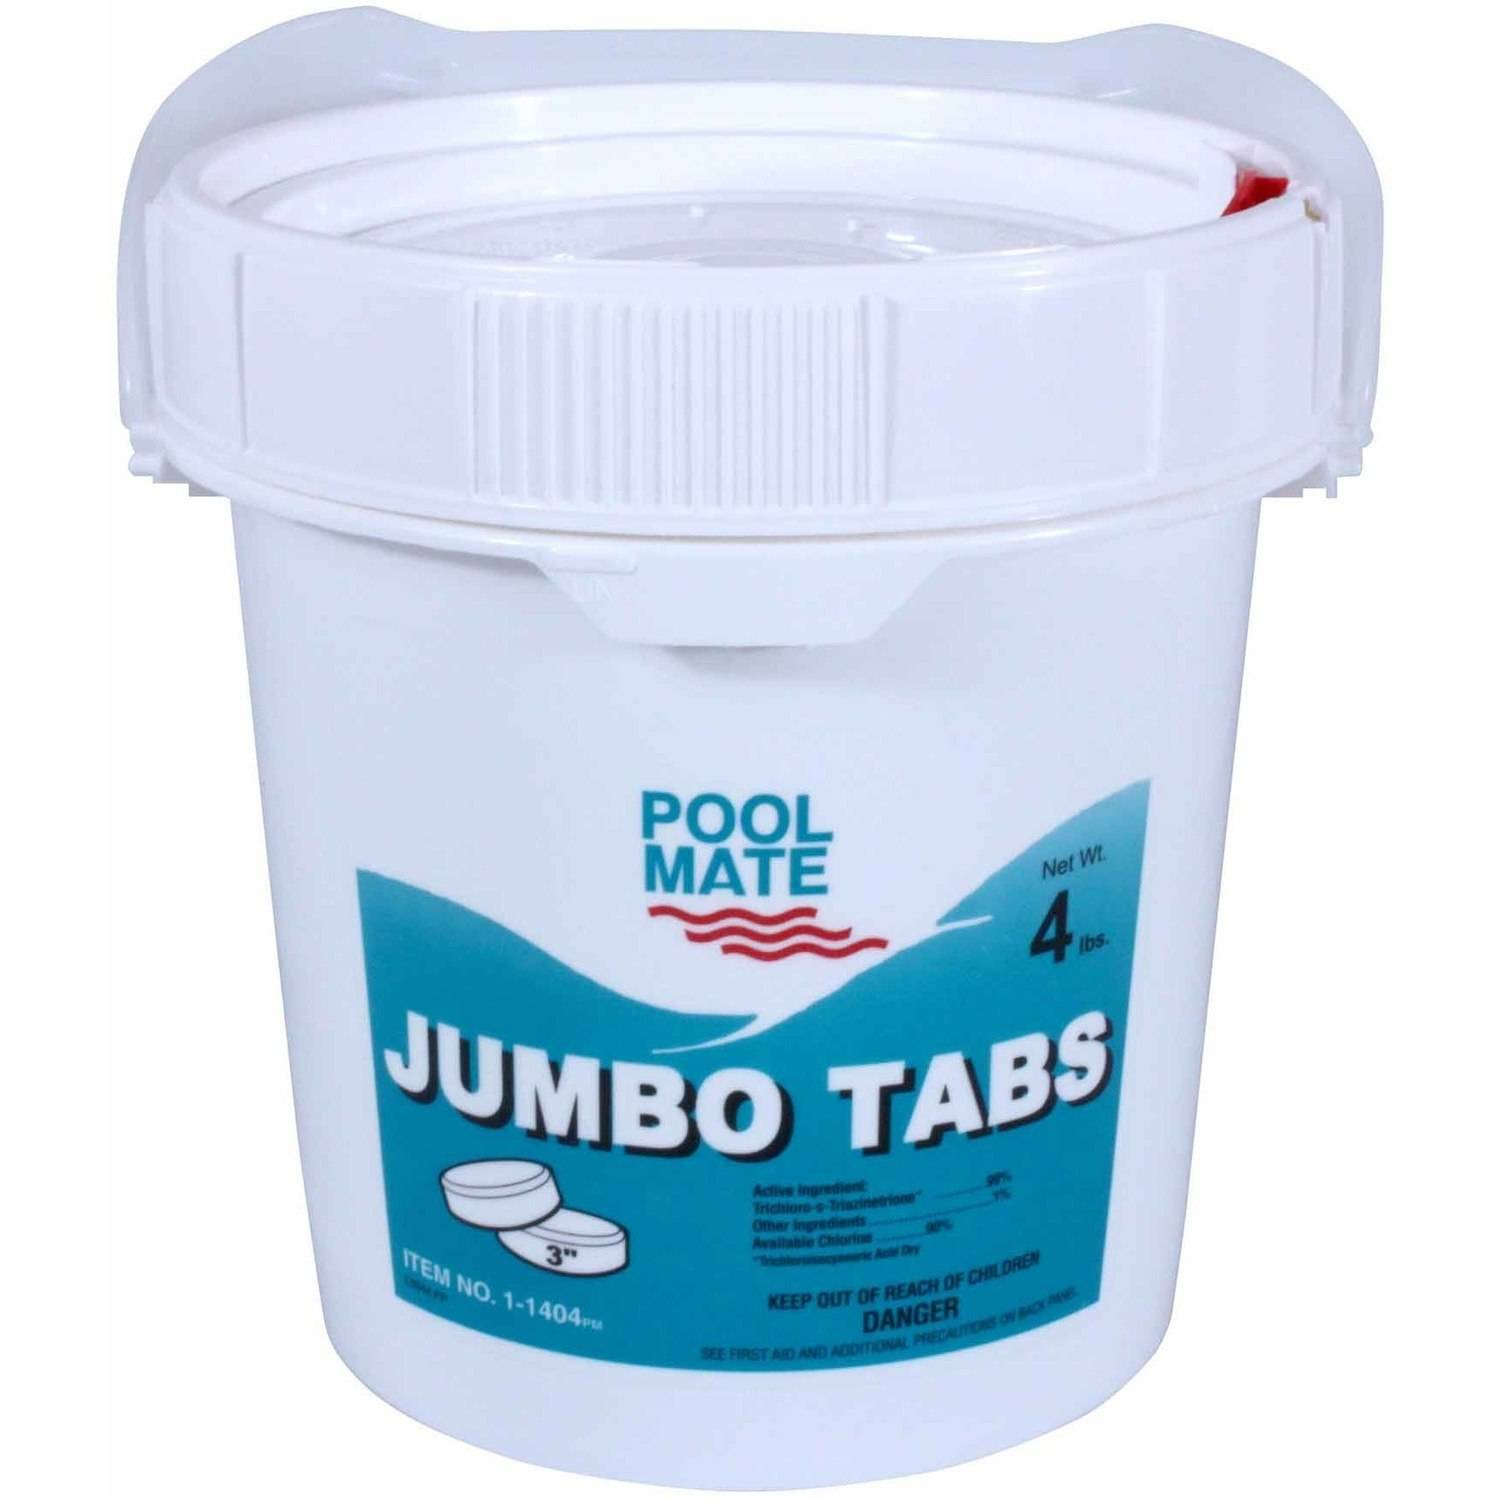 "Pool Mate Jumbo 3"" Chlorine Tablets for Swimming Pools ..."